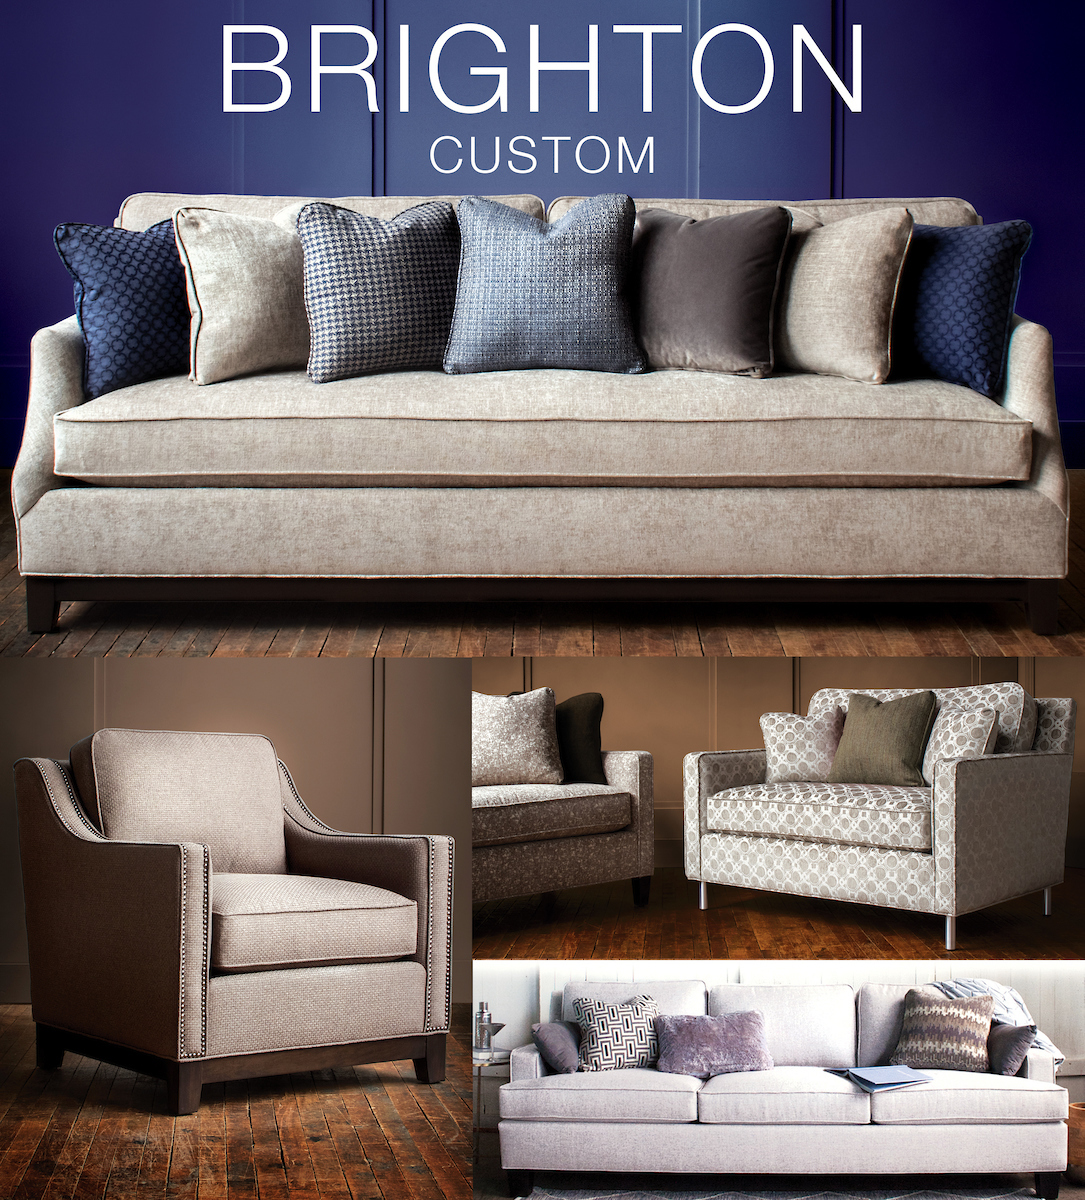 Brighton Custom Design